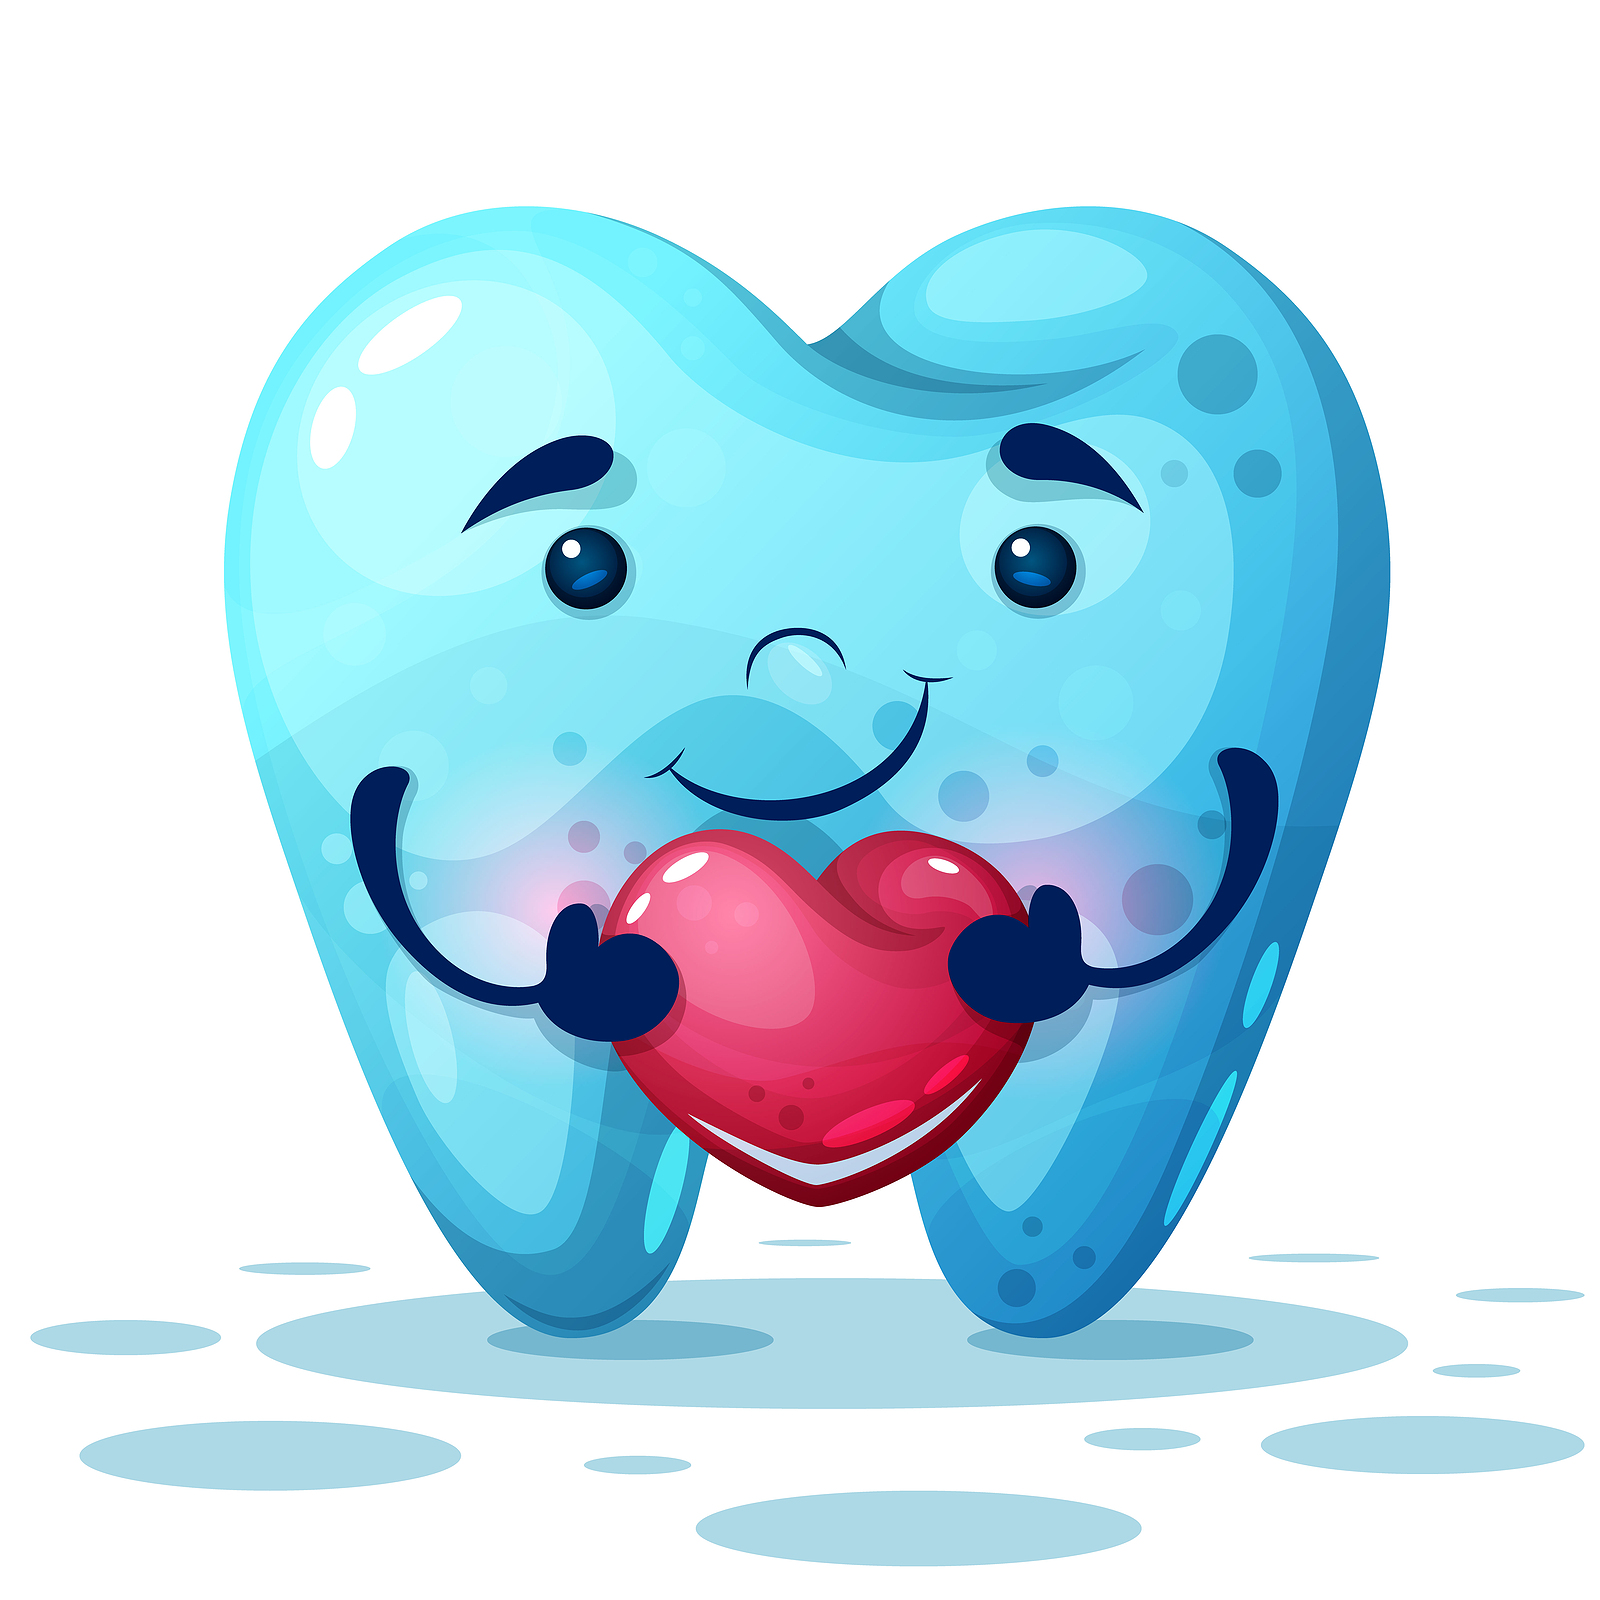 Heart disease? Then watch out for your gums